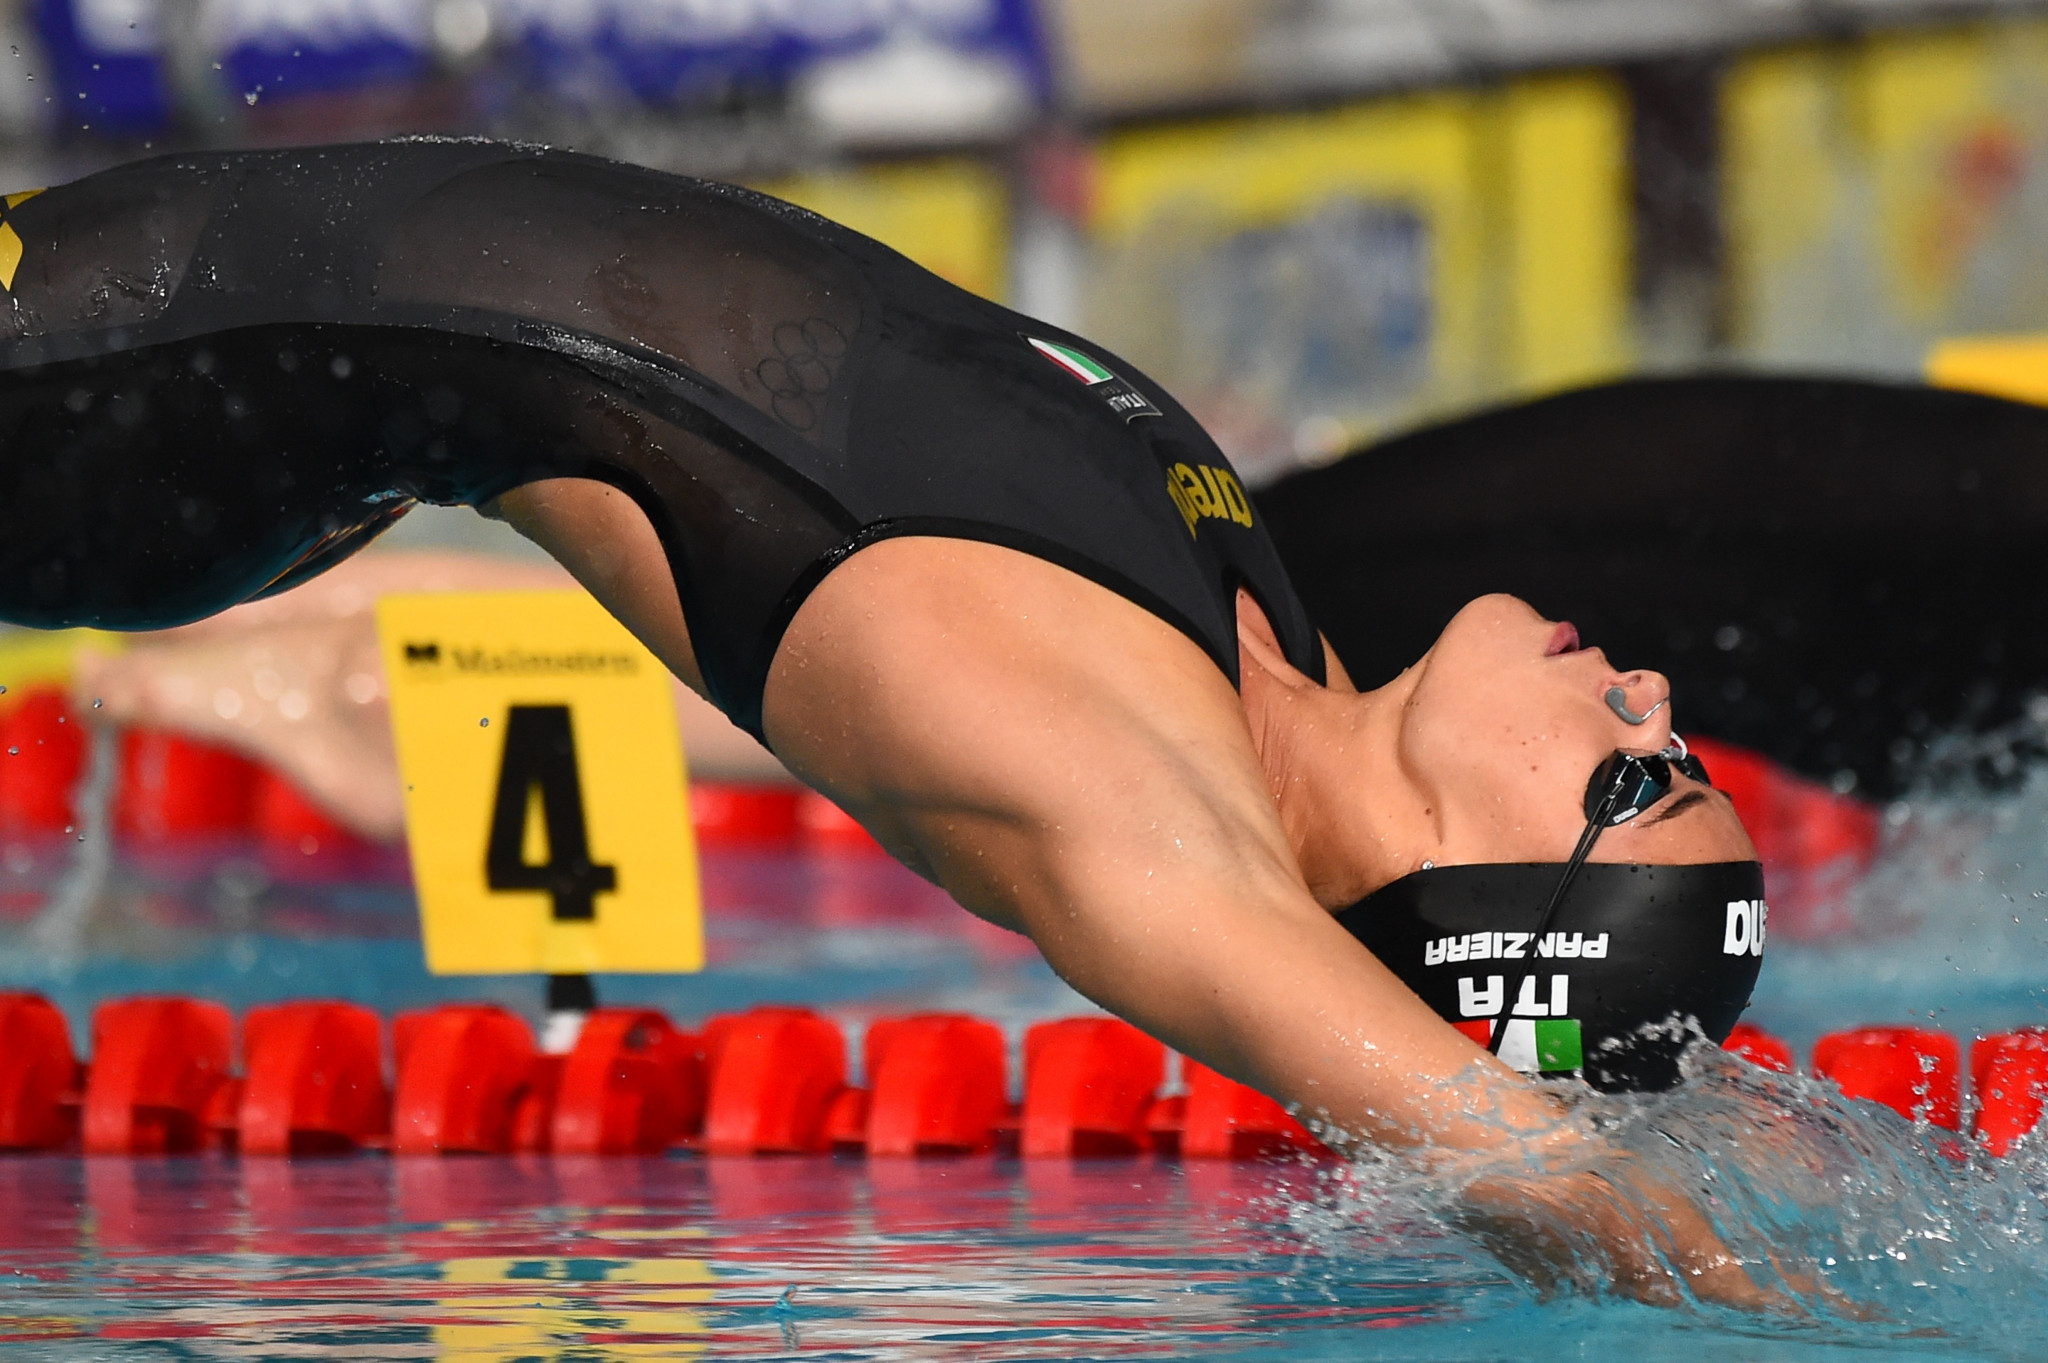 Italy's Margherita Panziera broke a 27-year-old Championship record in the women's 200m backstroke ©Getty Images